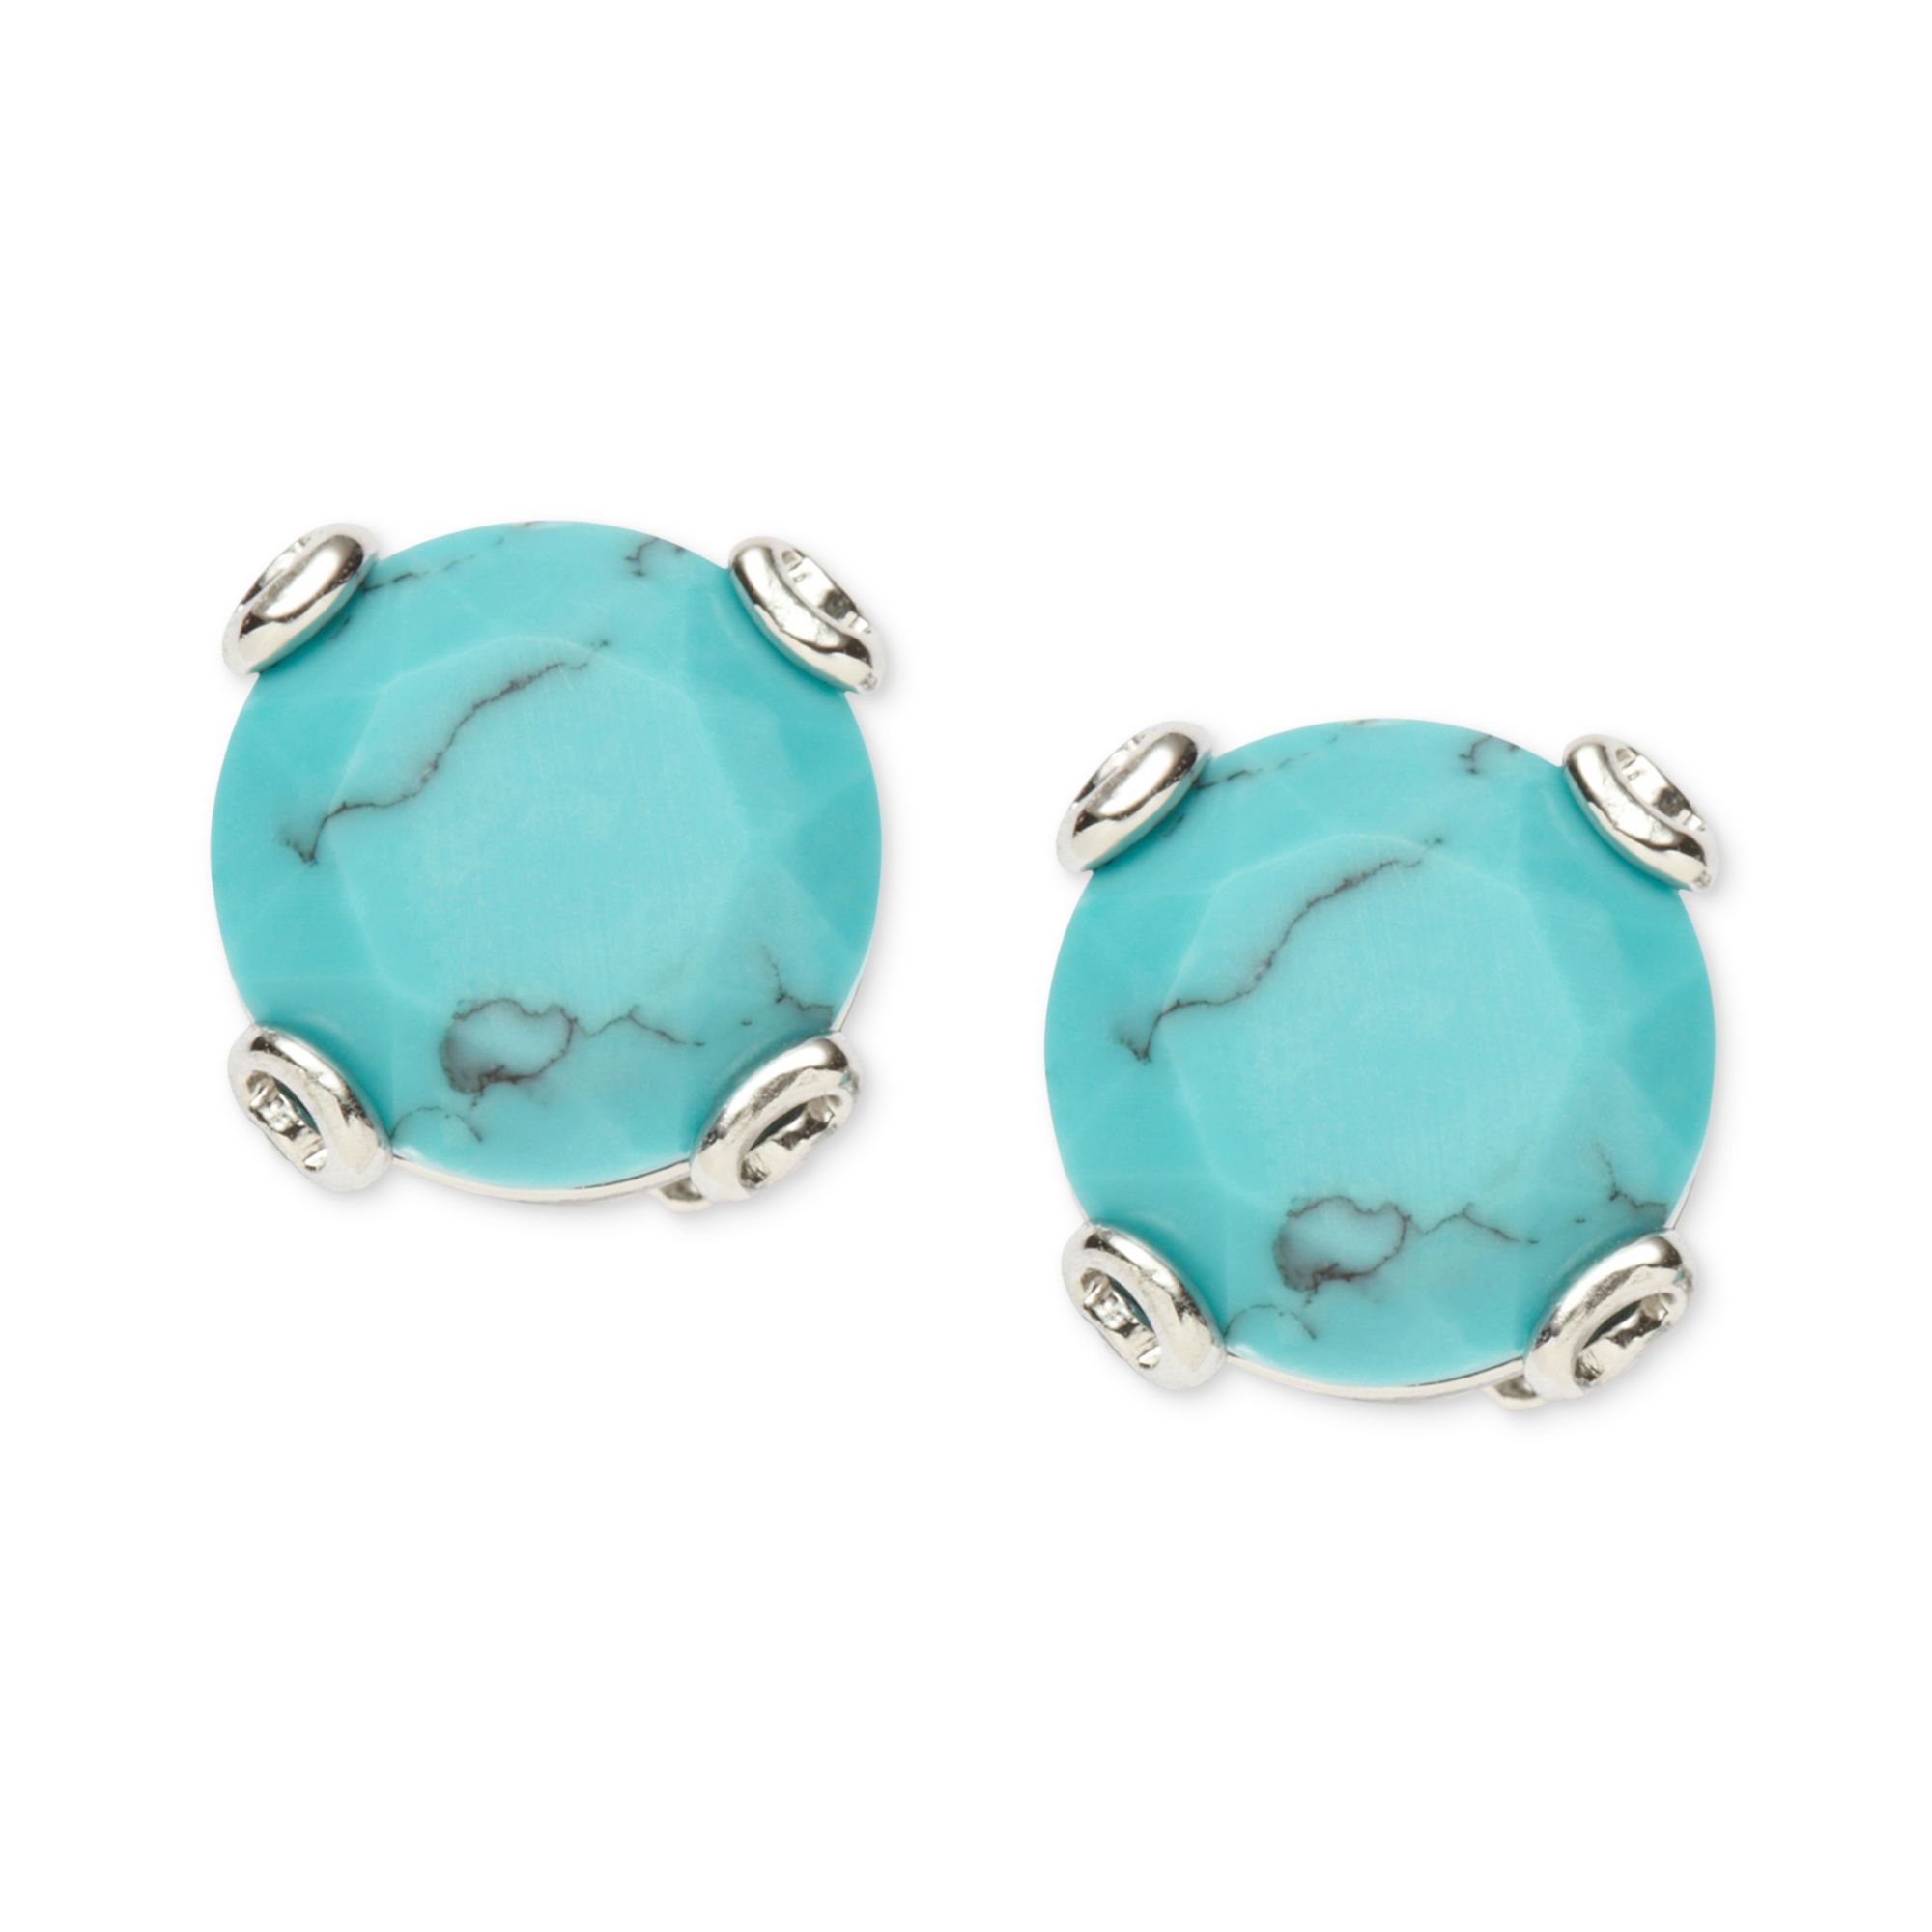 il jyfe traditional studs posts stud blackbourn american linda collections jewelry earrings turquoise fullxfull